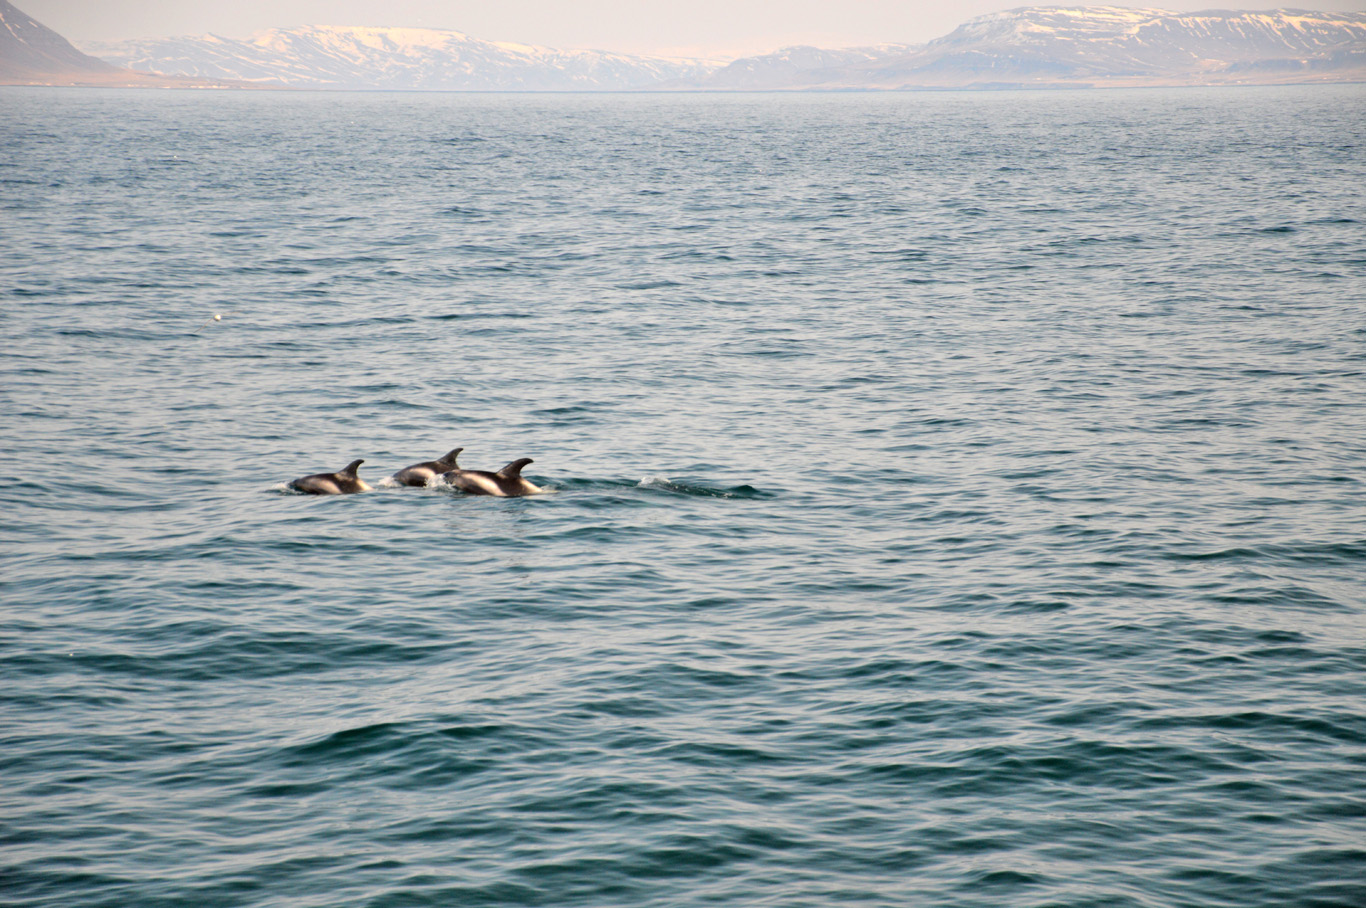 Whale watching - we only spotted dolphins